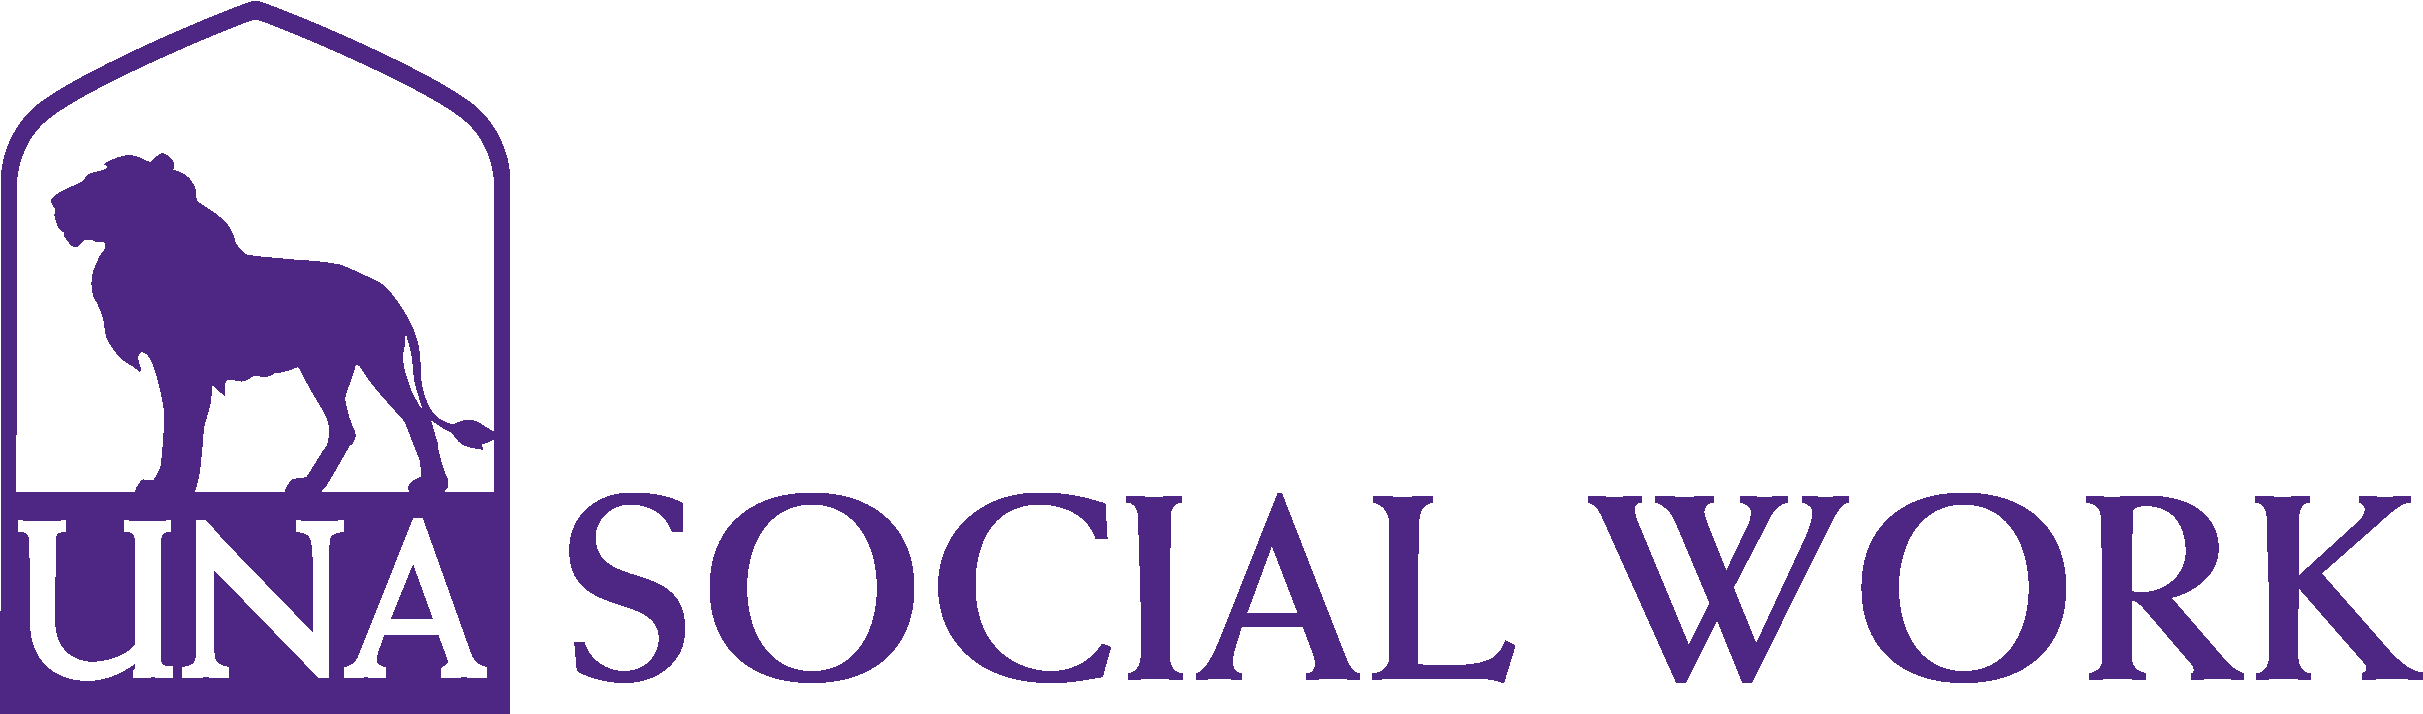 College of Arts and Sciences - Social Work Logo - Purple - Version 3